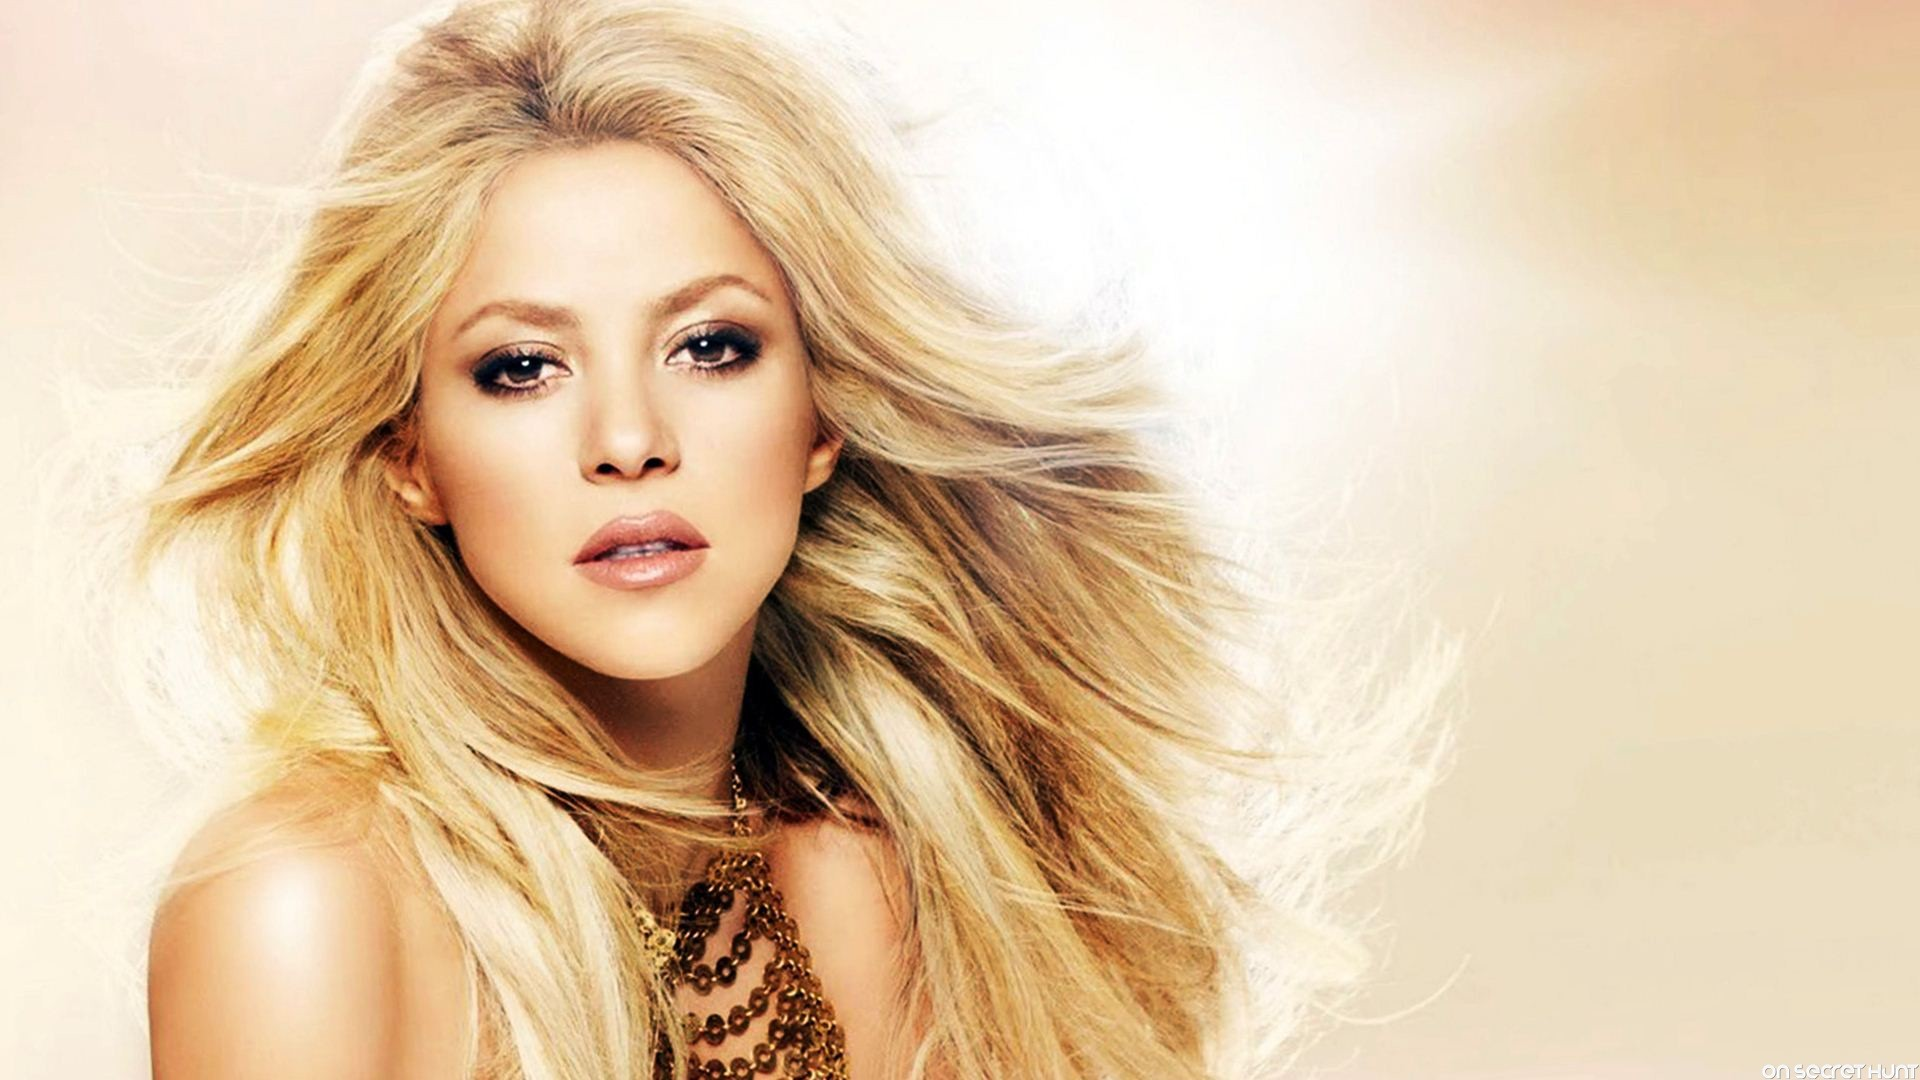 Desktop Backgrounds Shakira Hd Background Wallpaper 27 Thumb